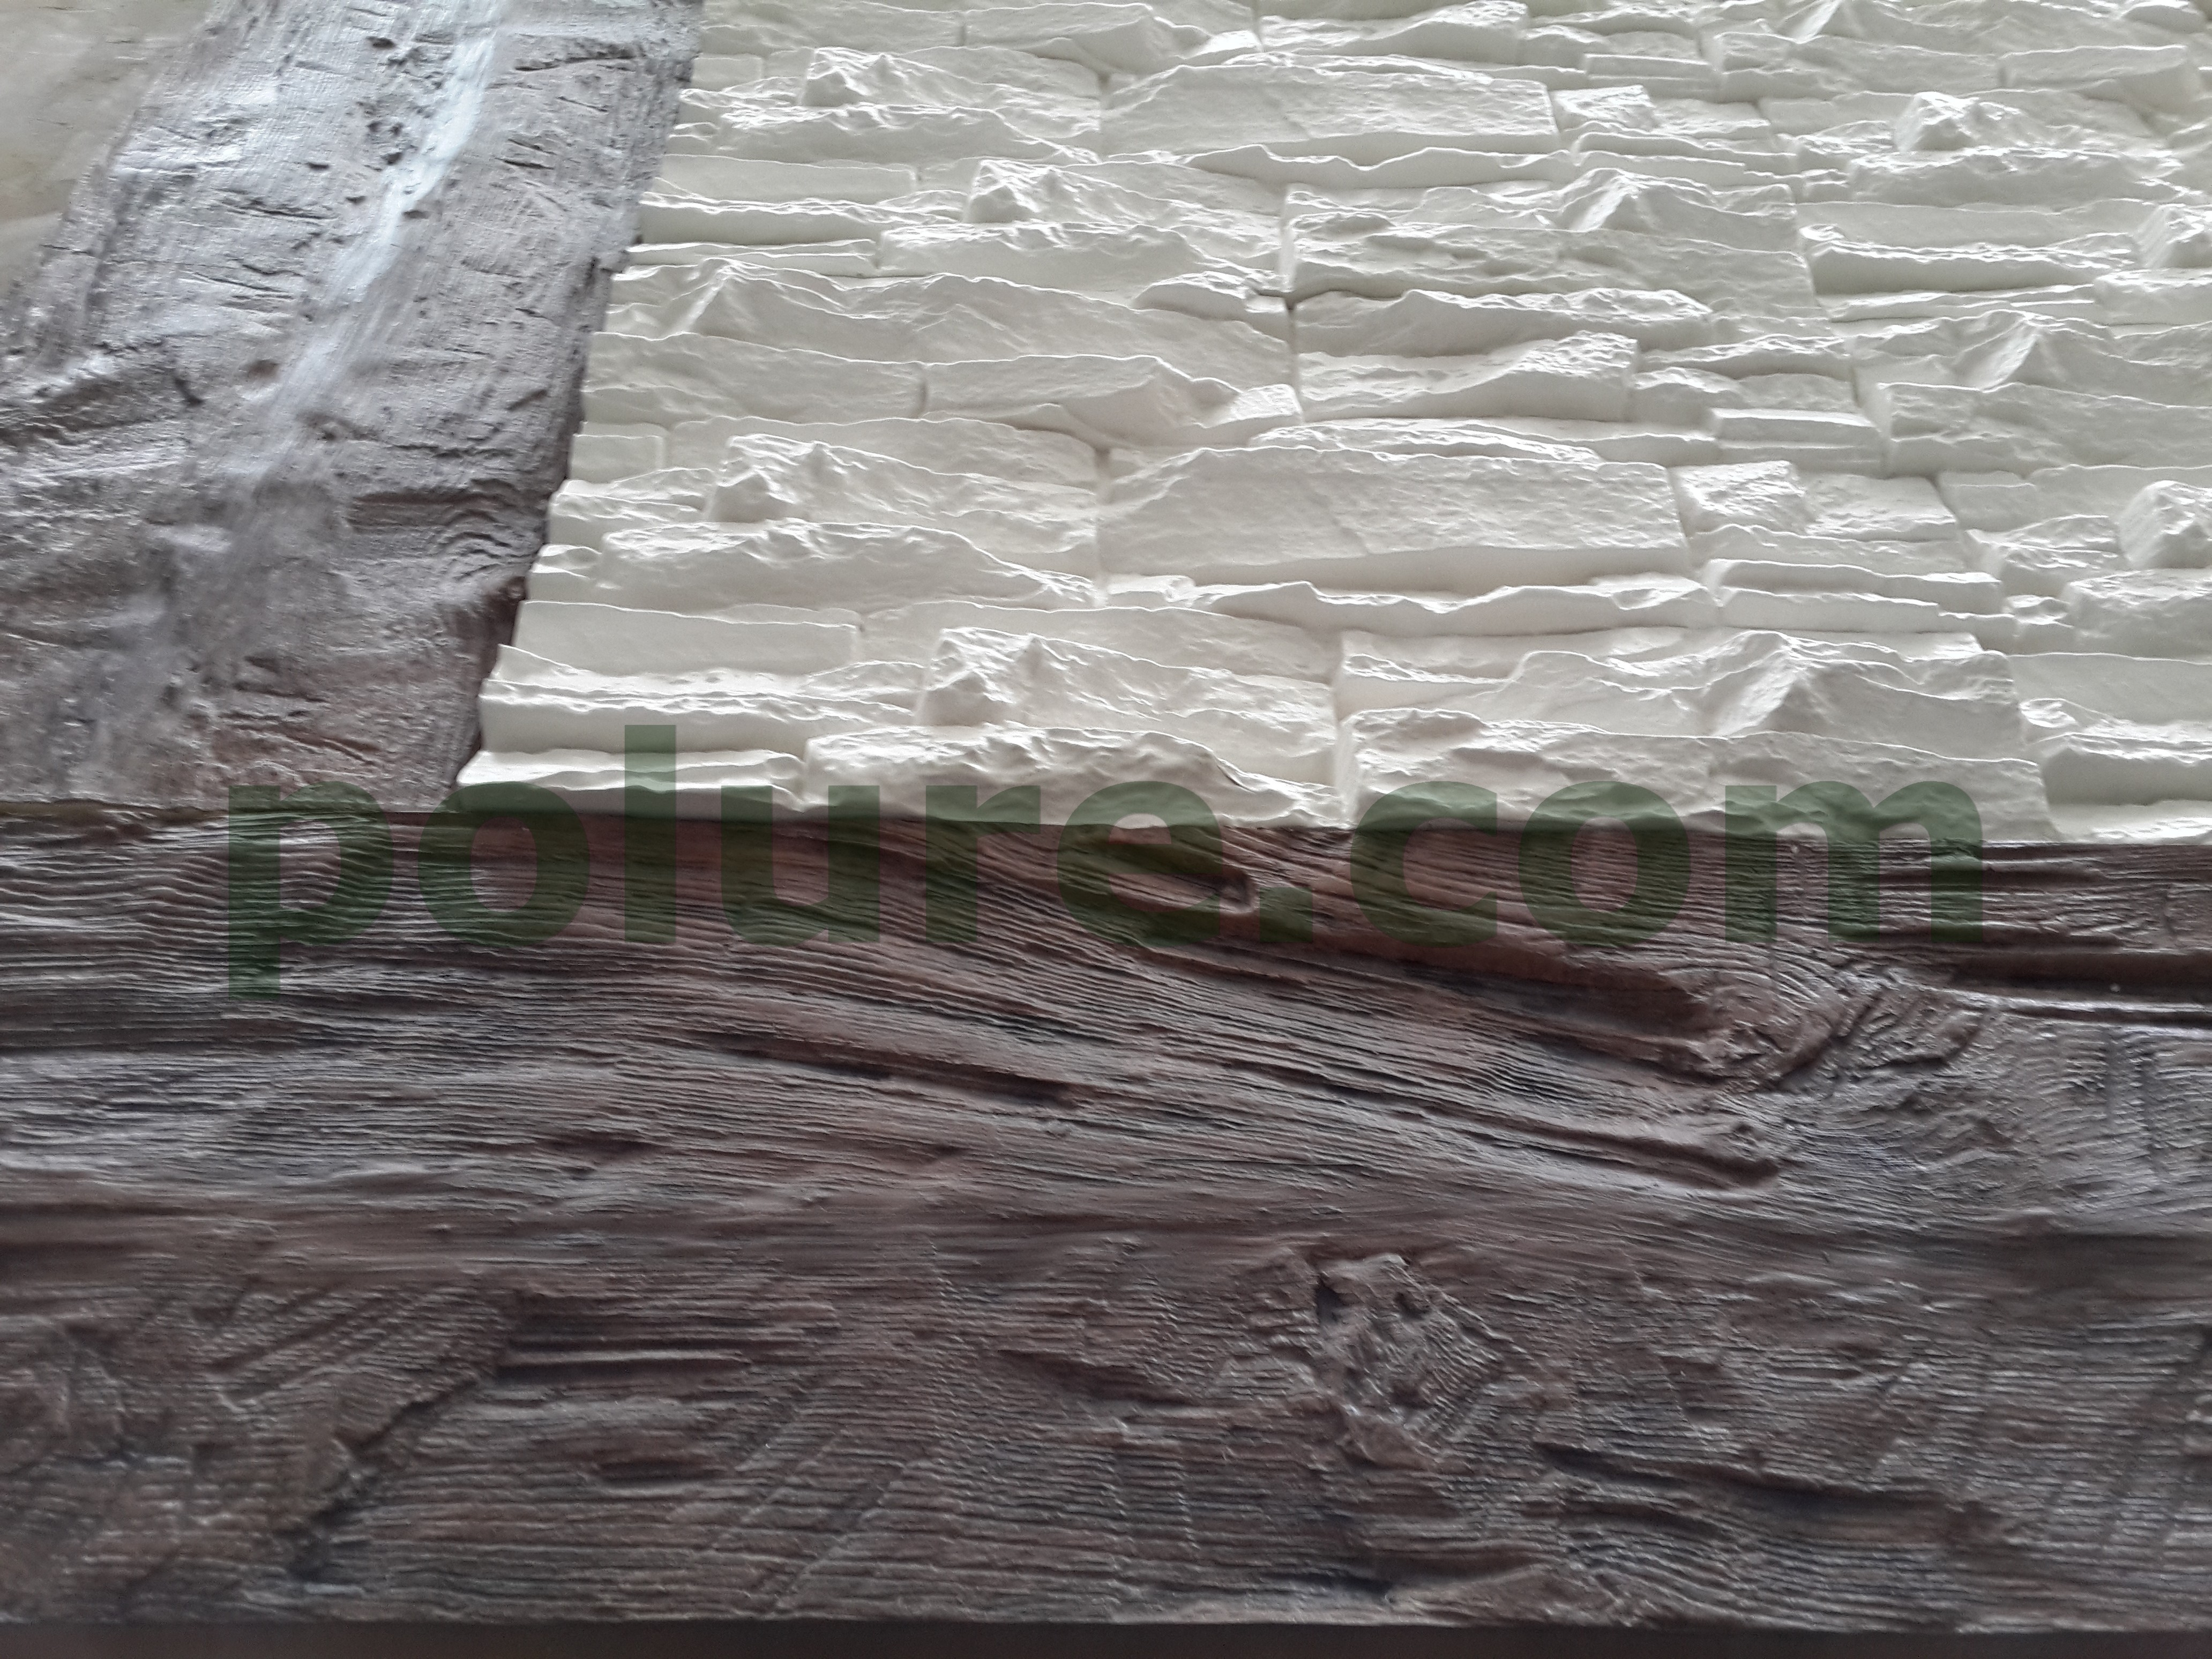 p-660-decorative-polyurethane-stone-look-like-moulding-panel-for-garden-wall-coted-rock-imitation-pu-for-interior-exterior decoration-board-price (5)